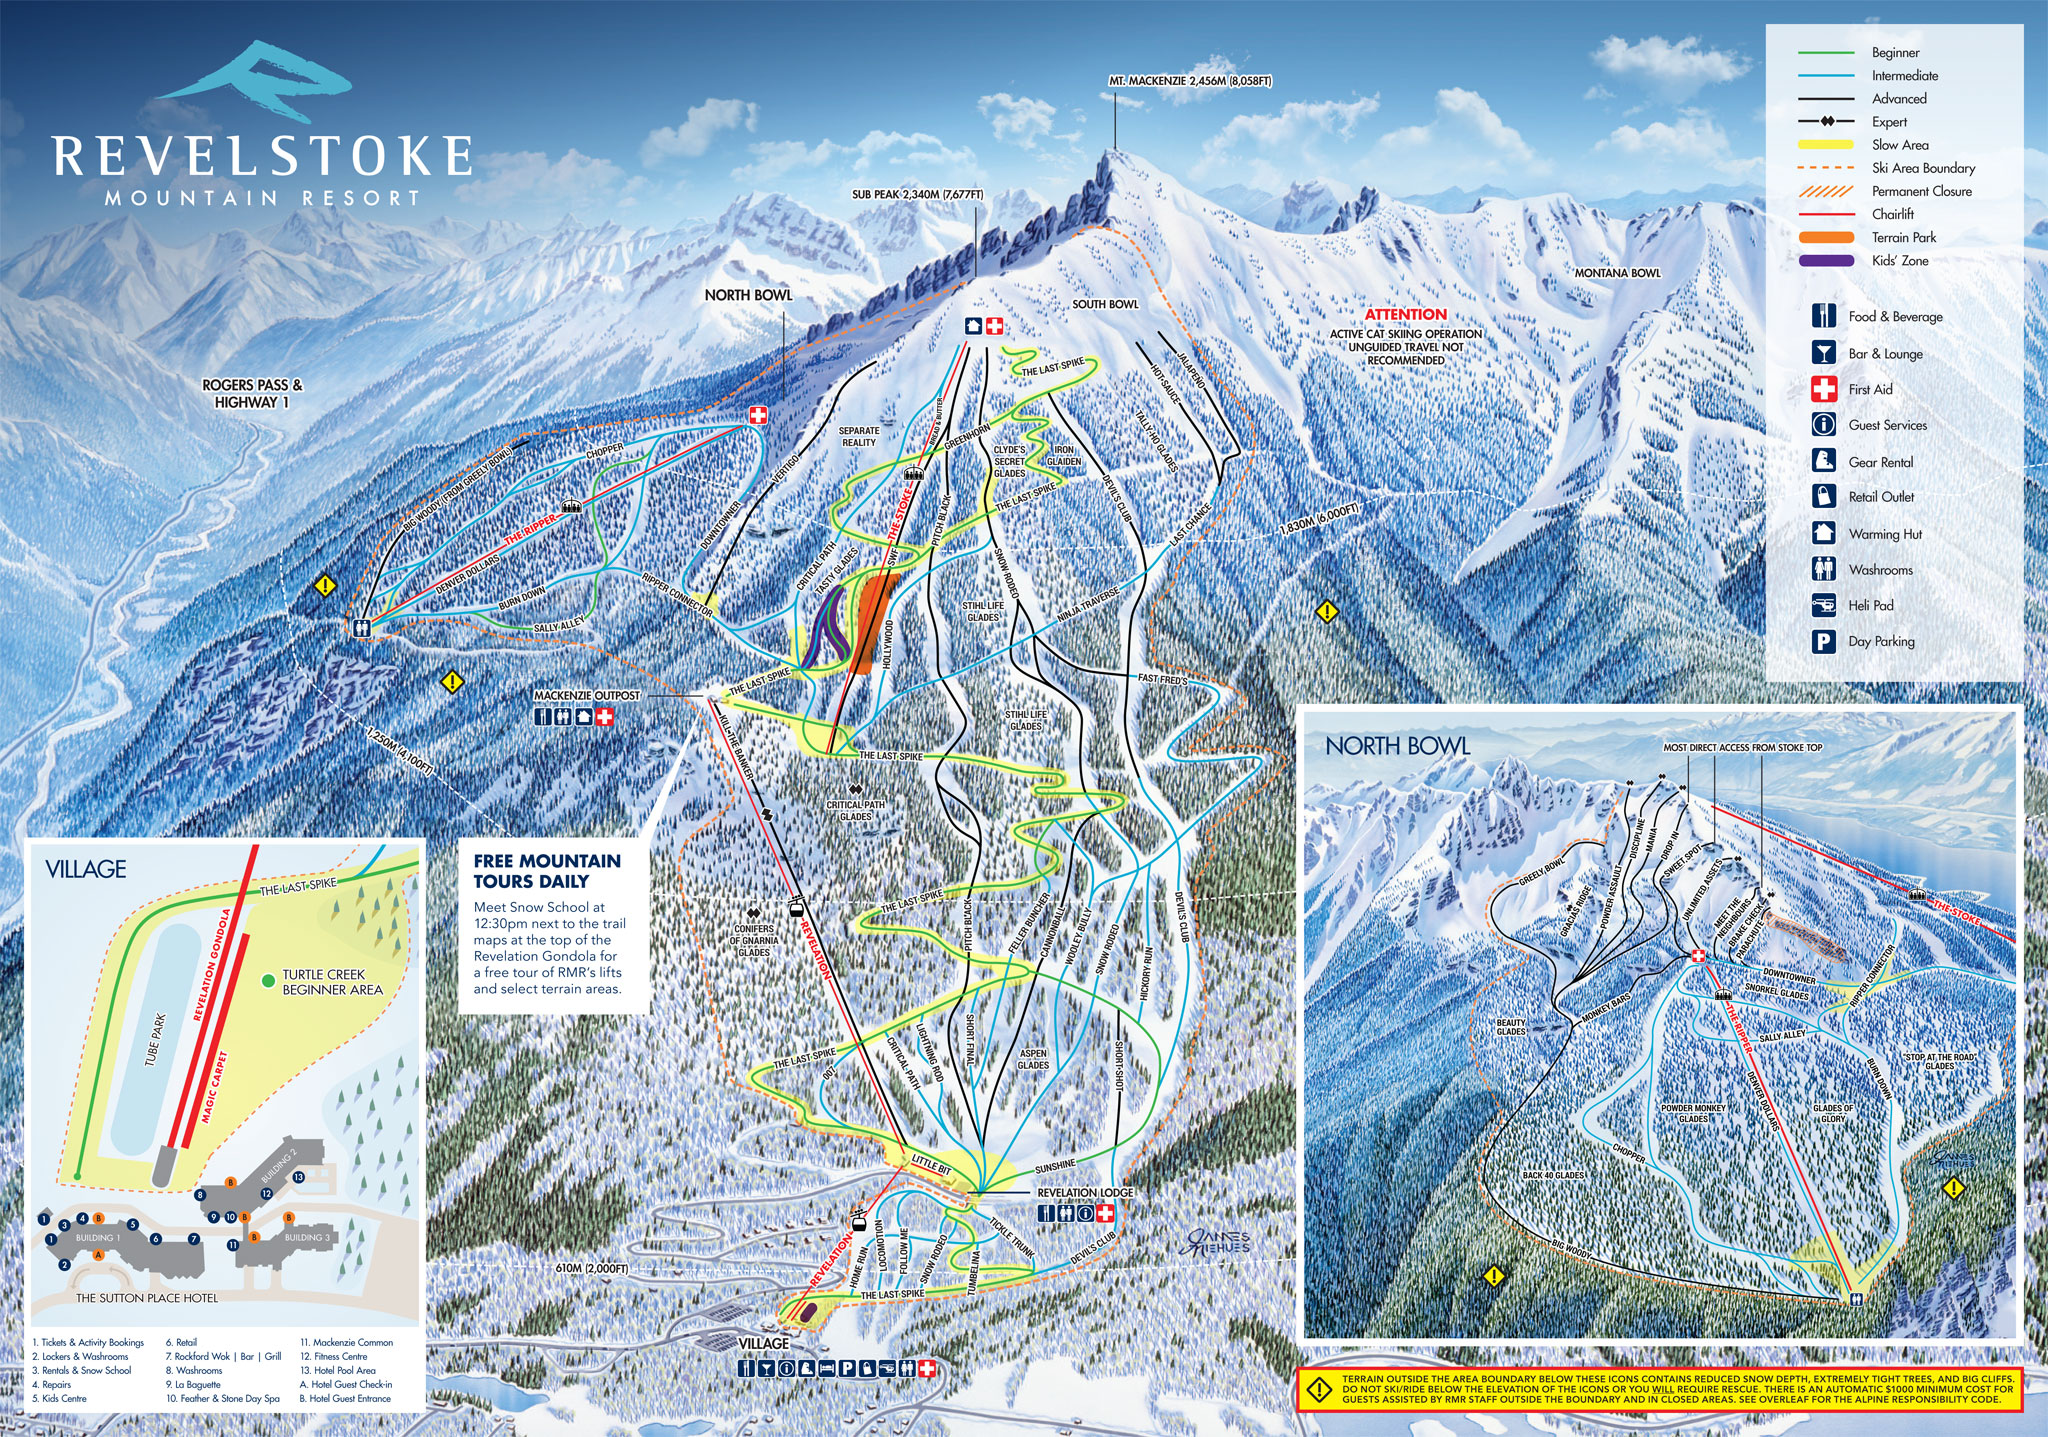 Best Of Revelstoke Mountain Resort 201920 Packages Top Tips - Eastern-us-ski-resorts-map